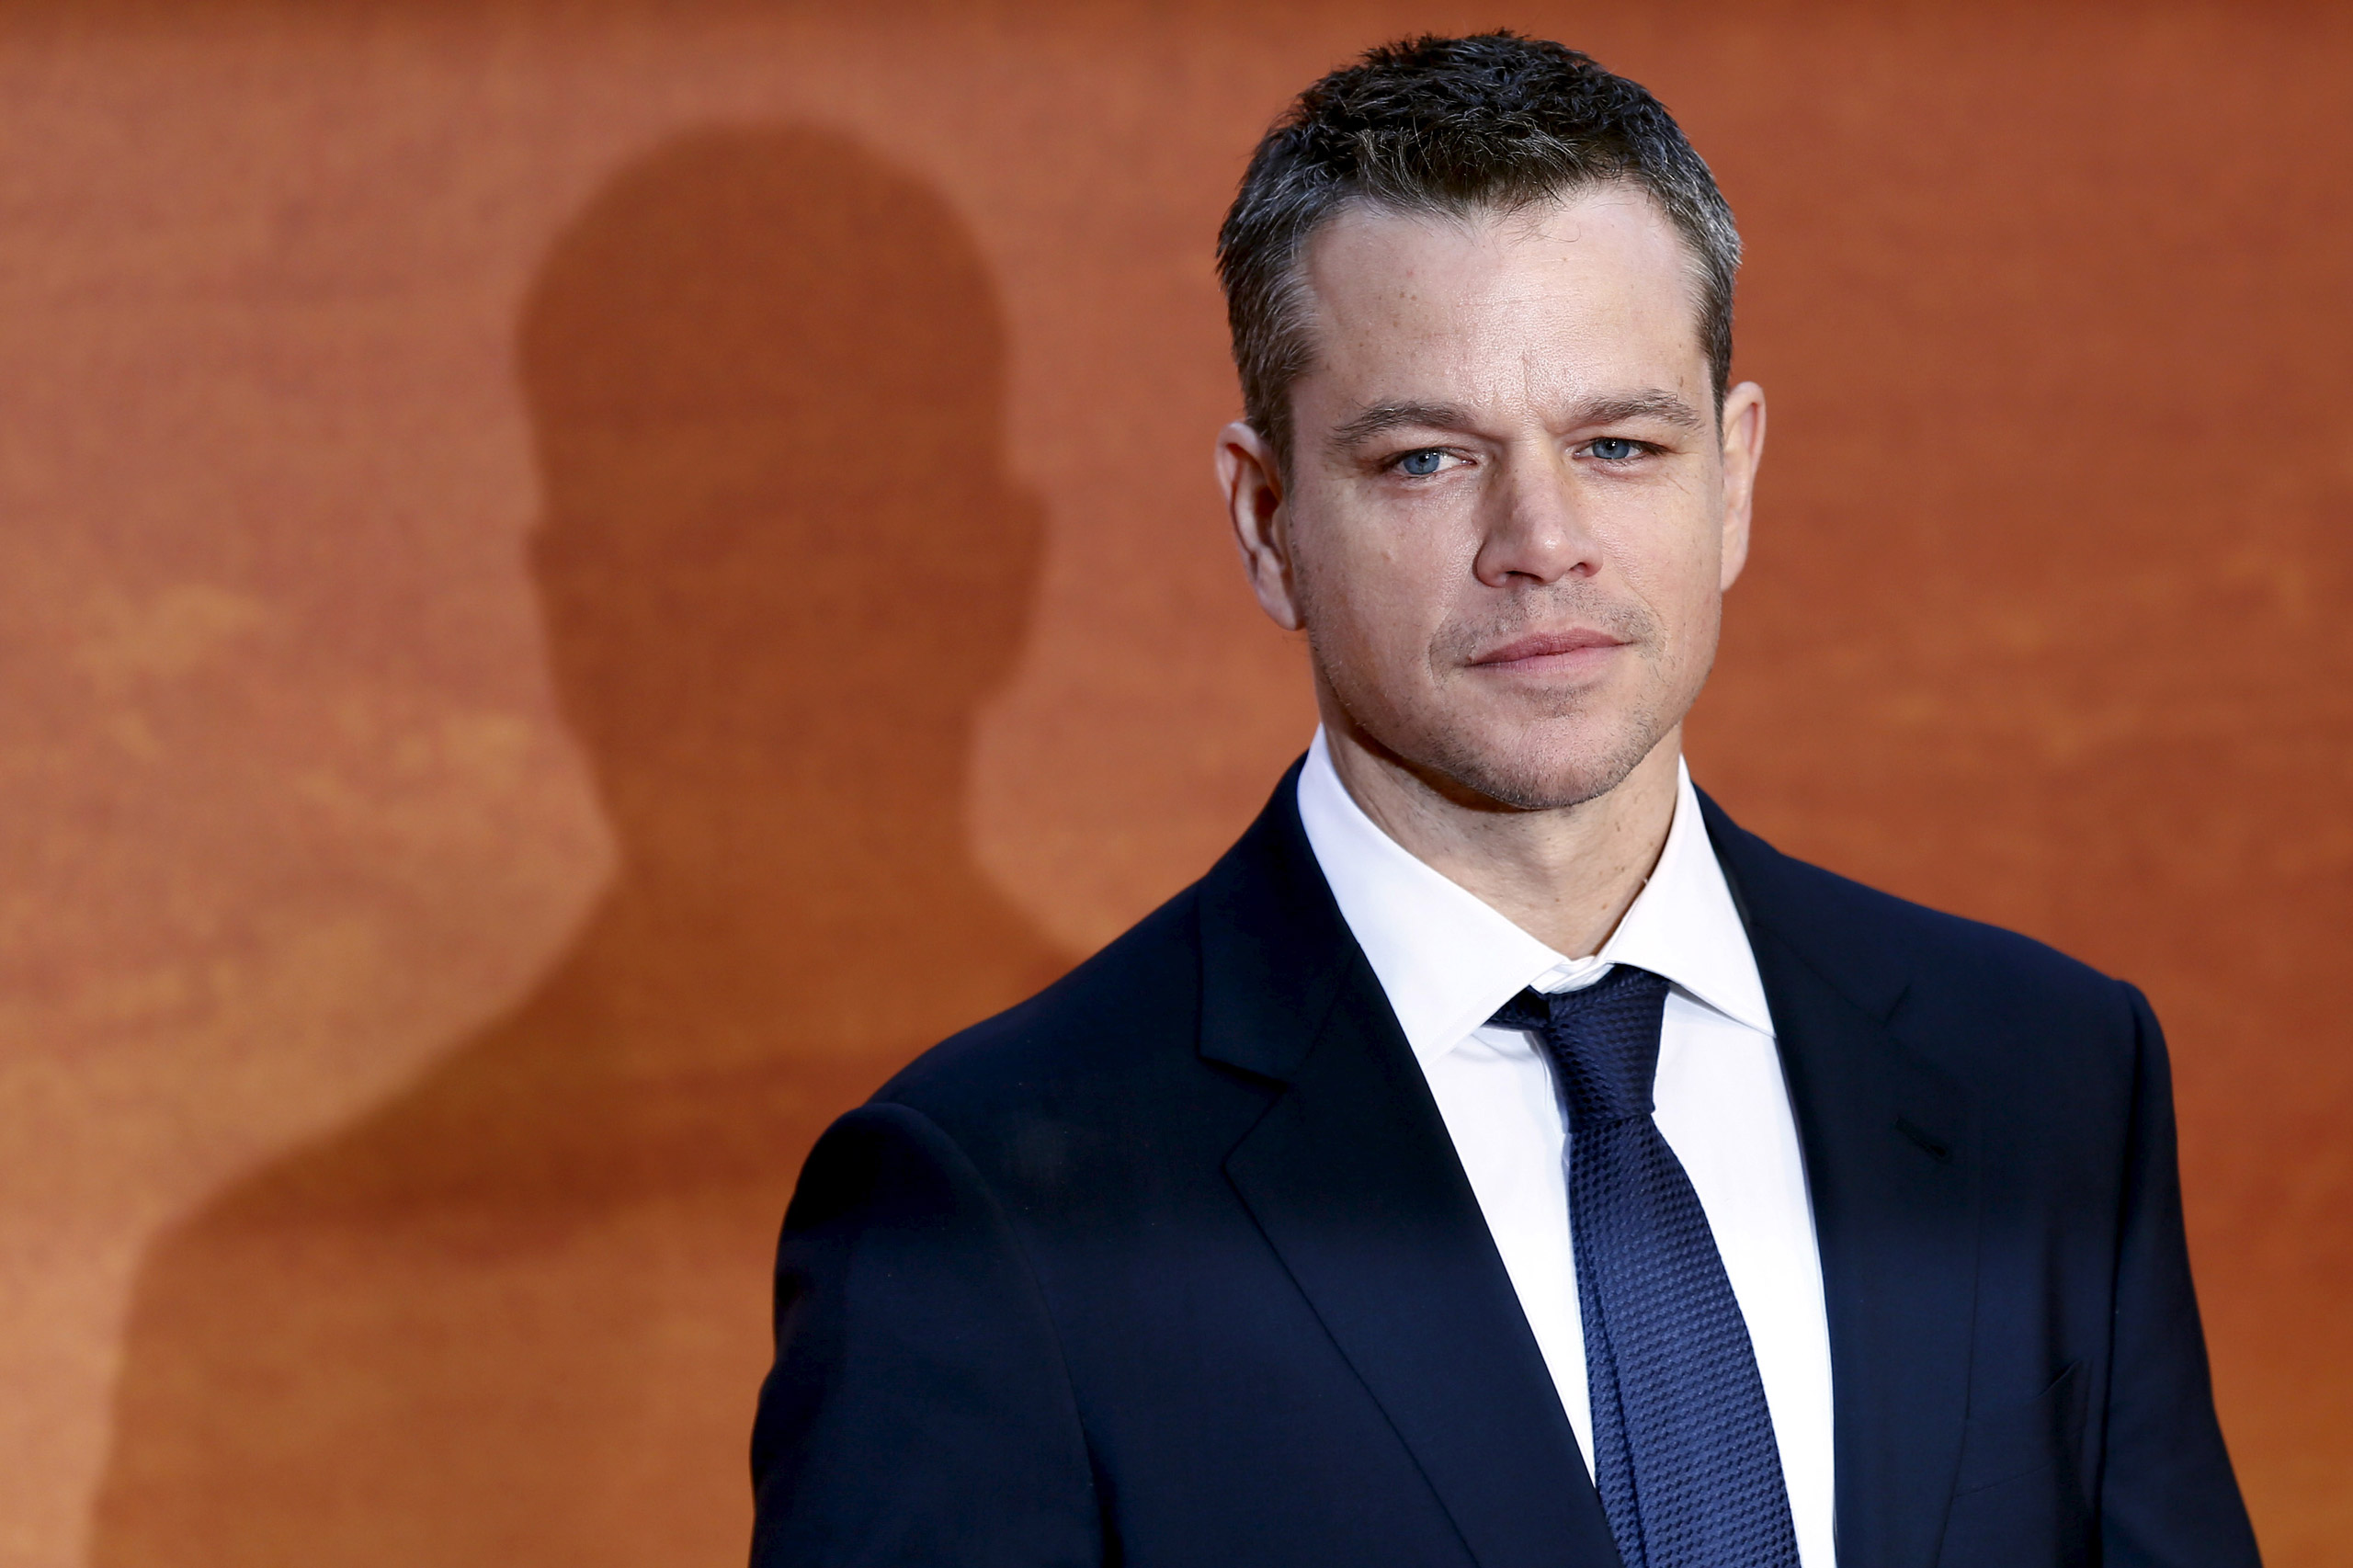 Matt Damon arrives for the UK premiere of  The Martian  at Leicester Square in London on Sept. 24, 2015.